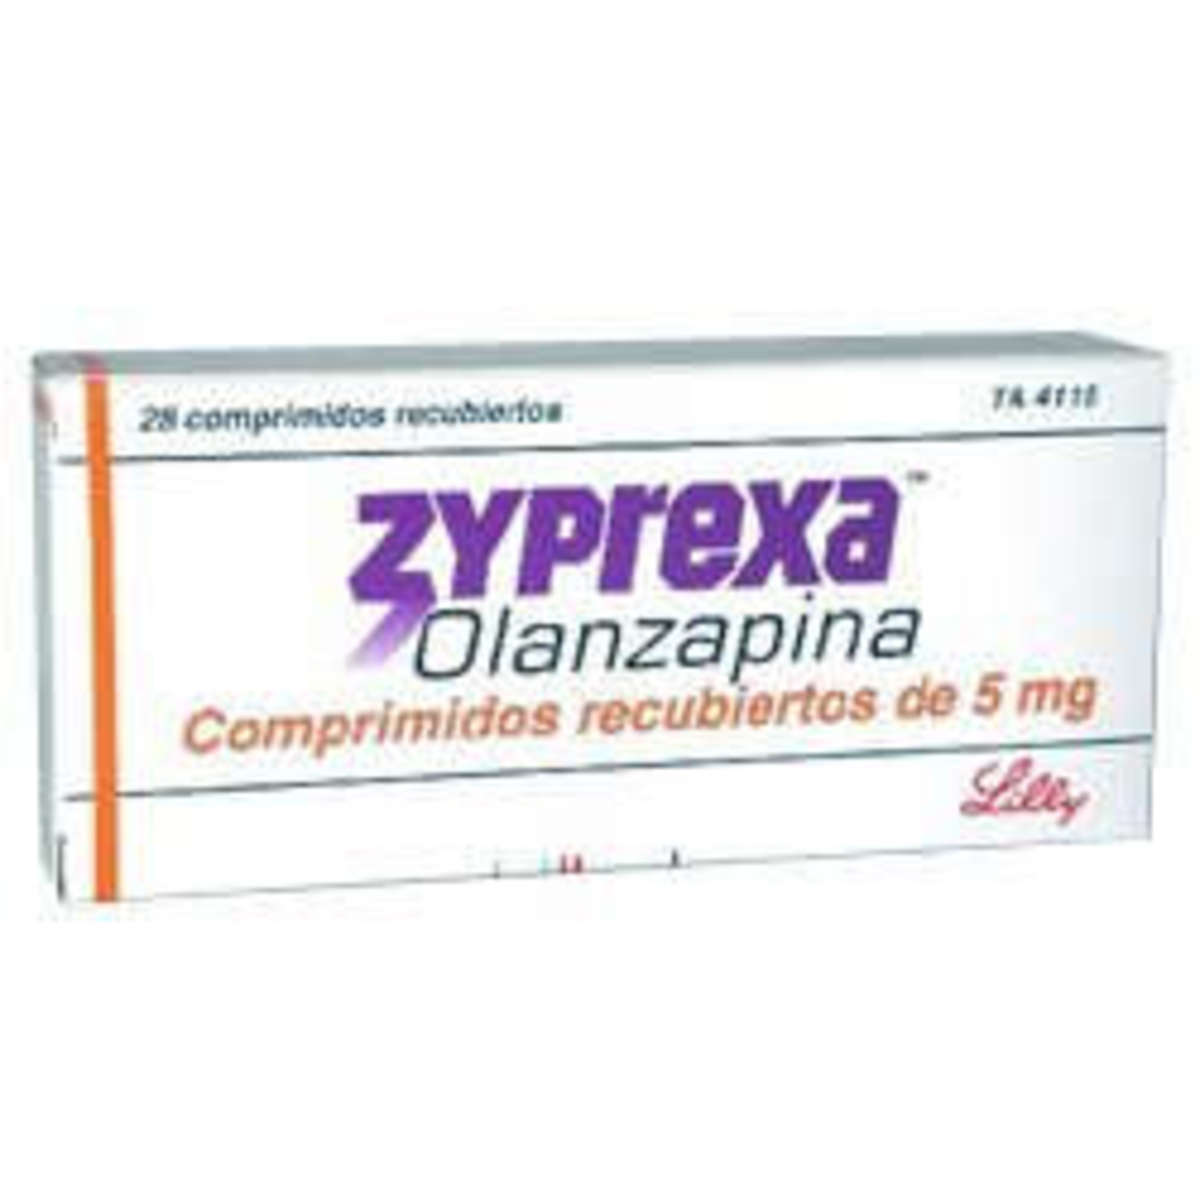 Why does antipsychotic Olanzapine (Zyprexa) increase appetite and cause weight gain